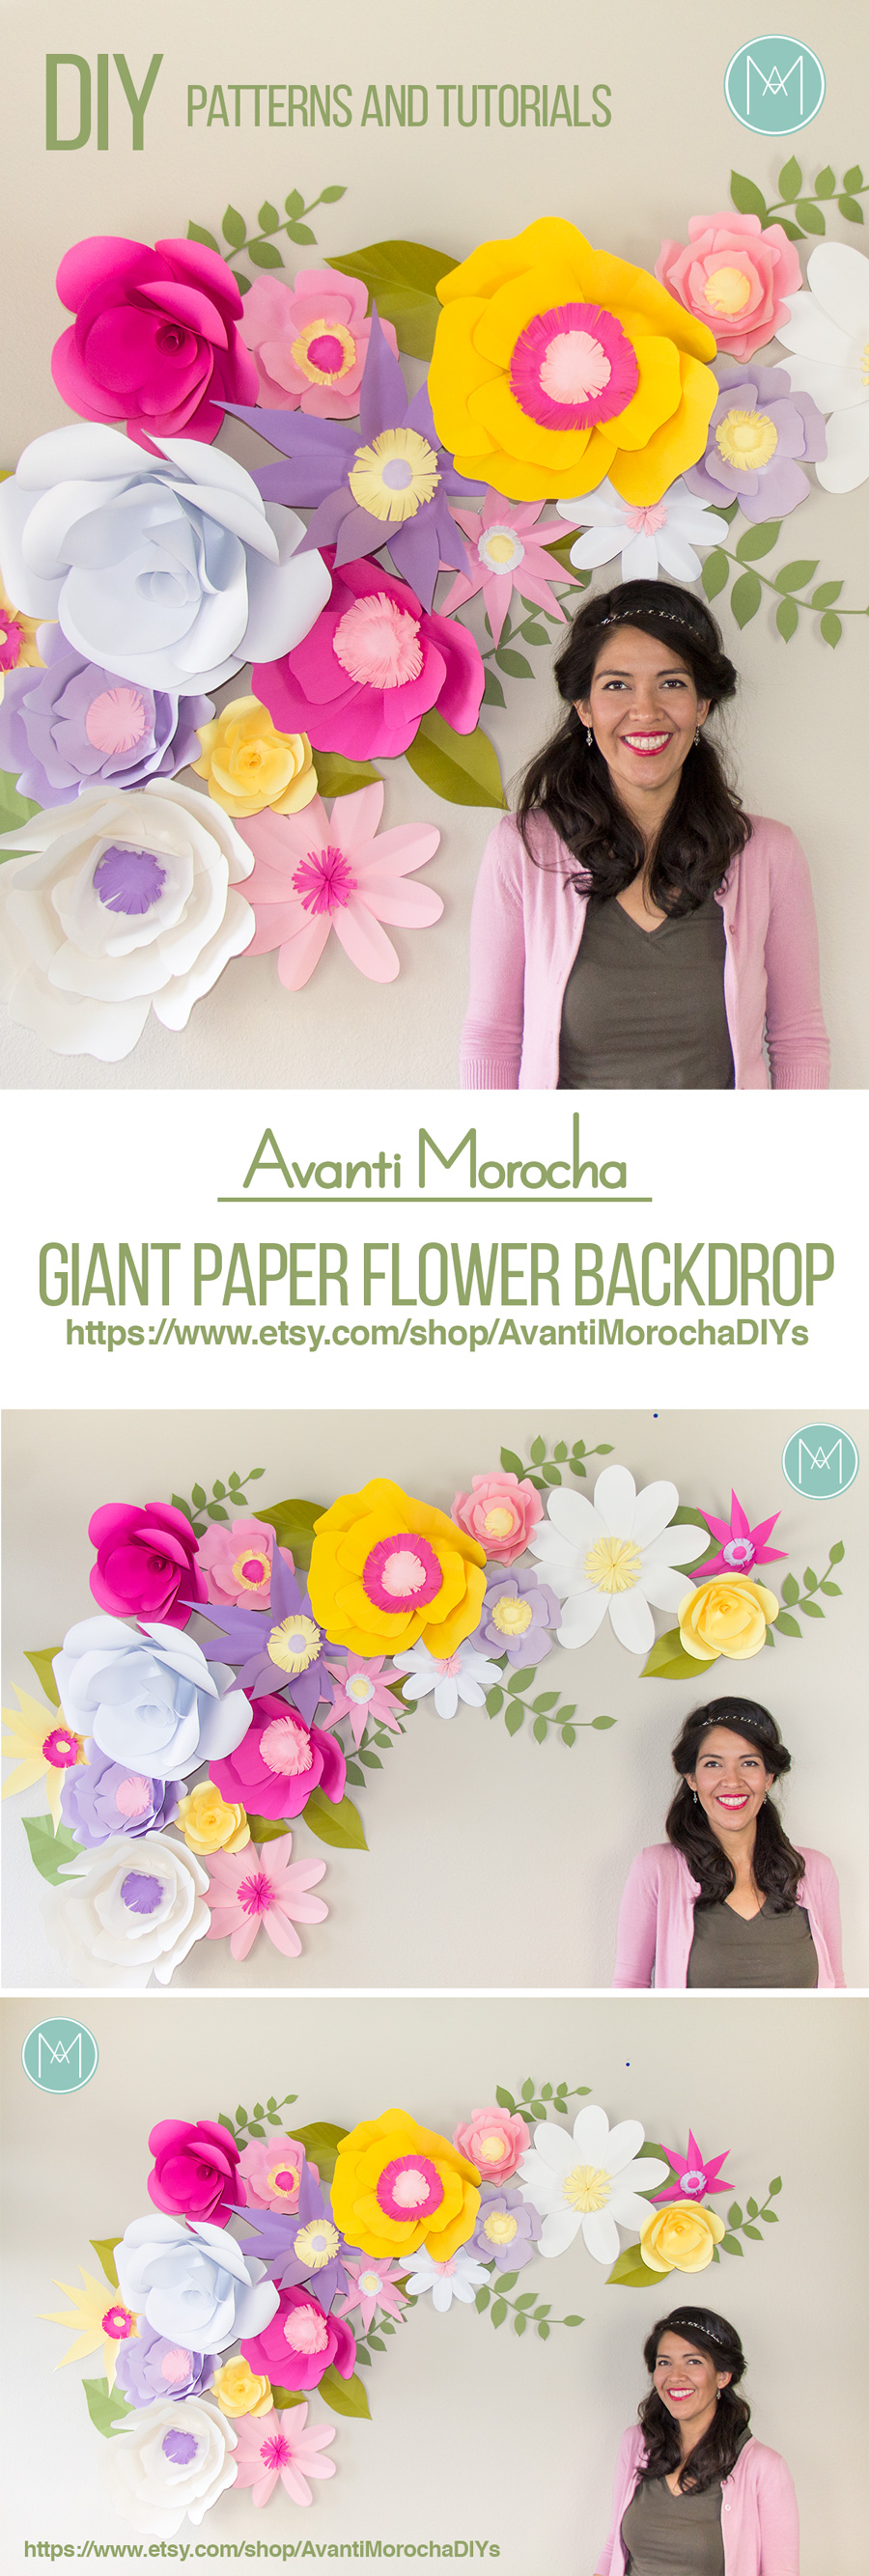 Diy Full Giant Paper Flower Backdrop Avanti Morocha